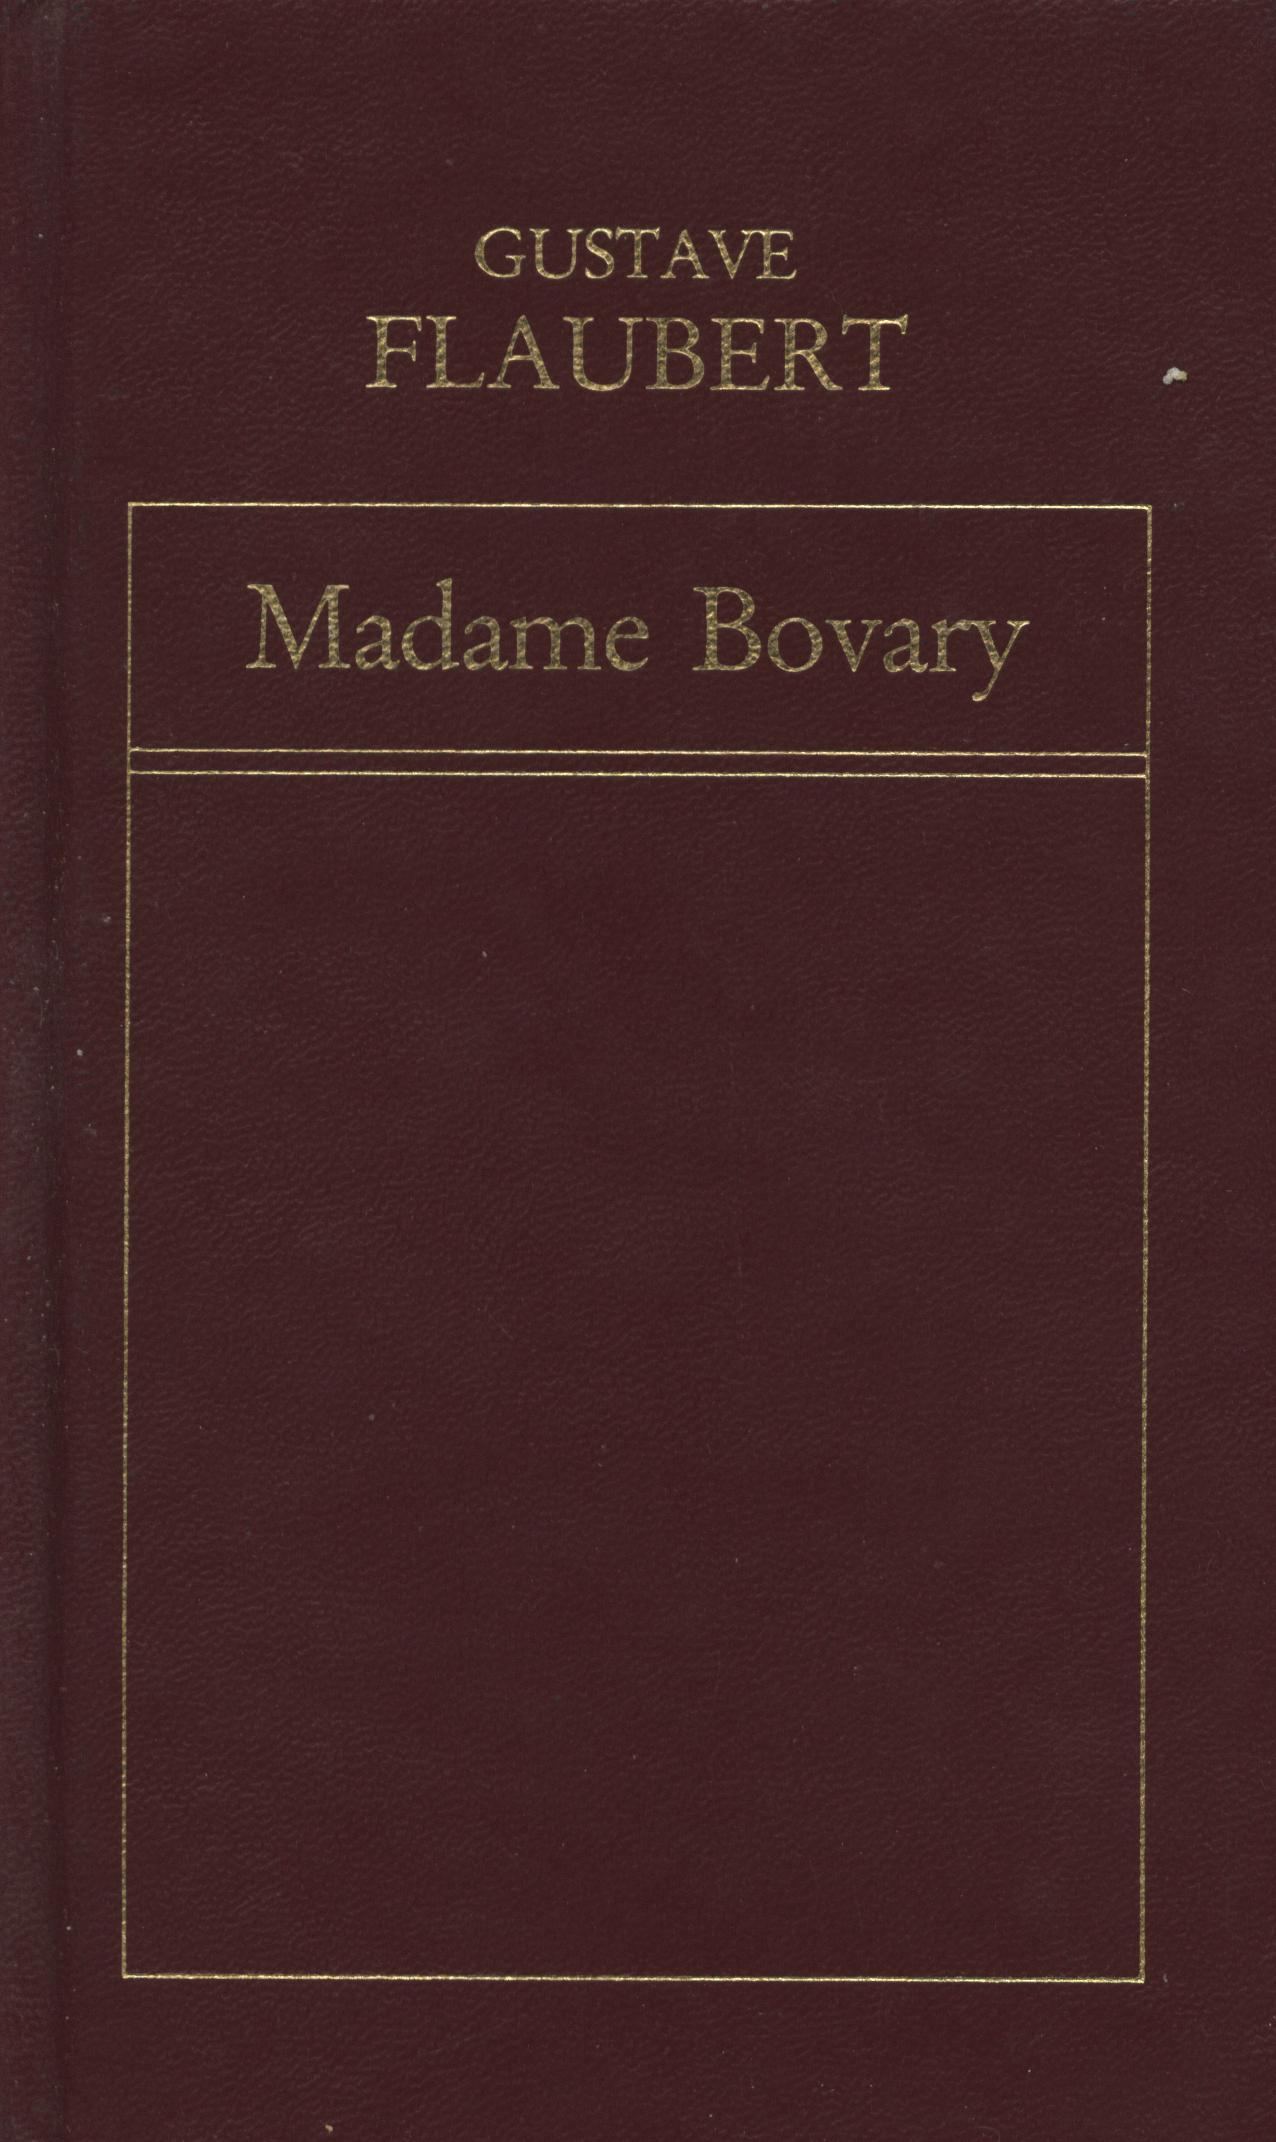 Madame Bovary - Gustave Flauvert